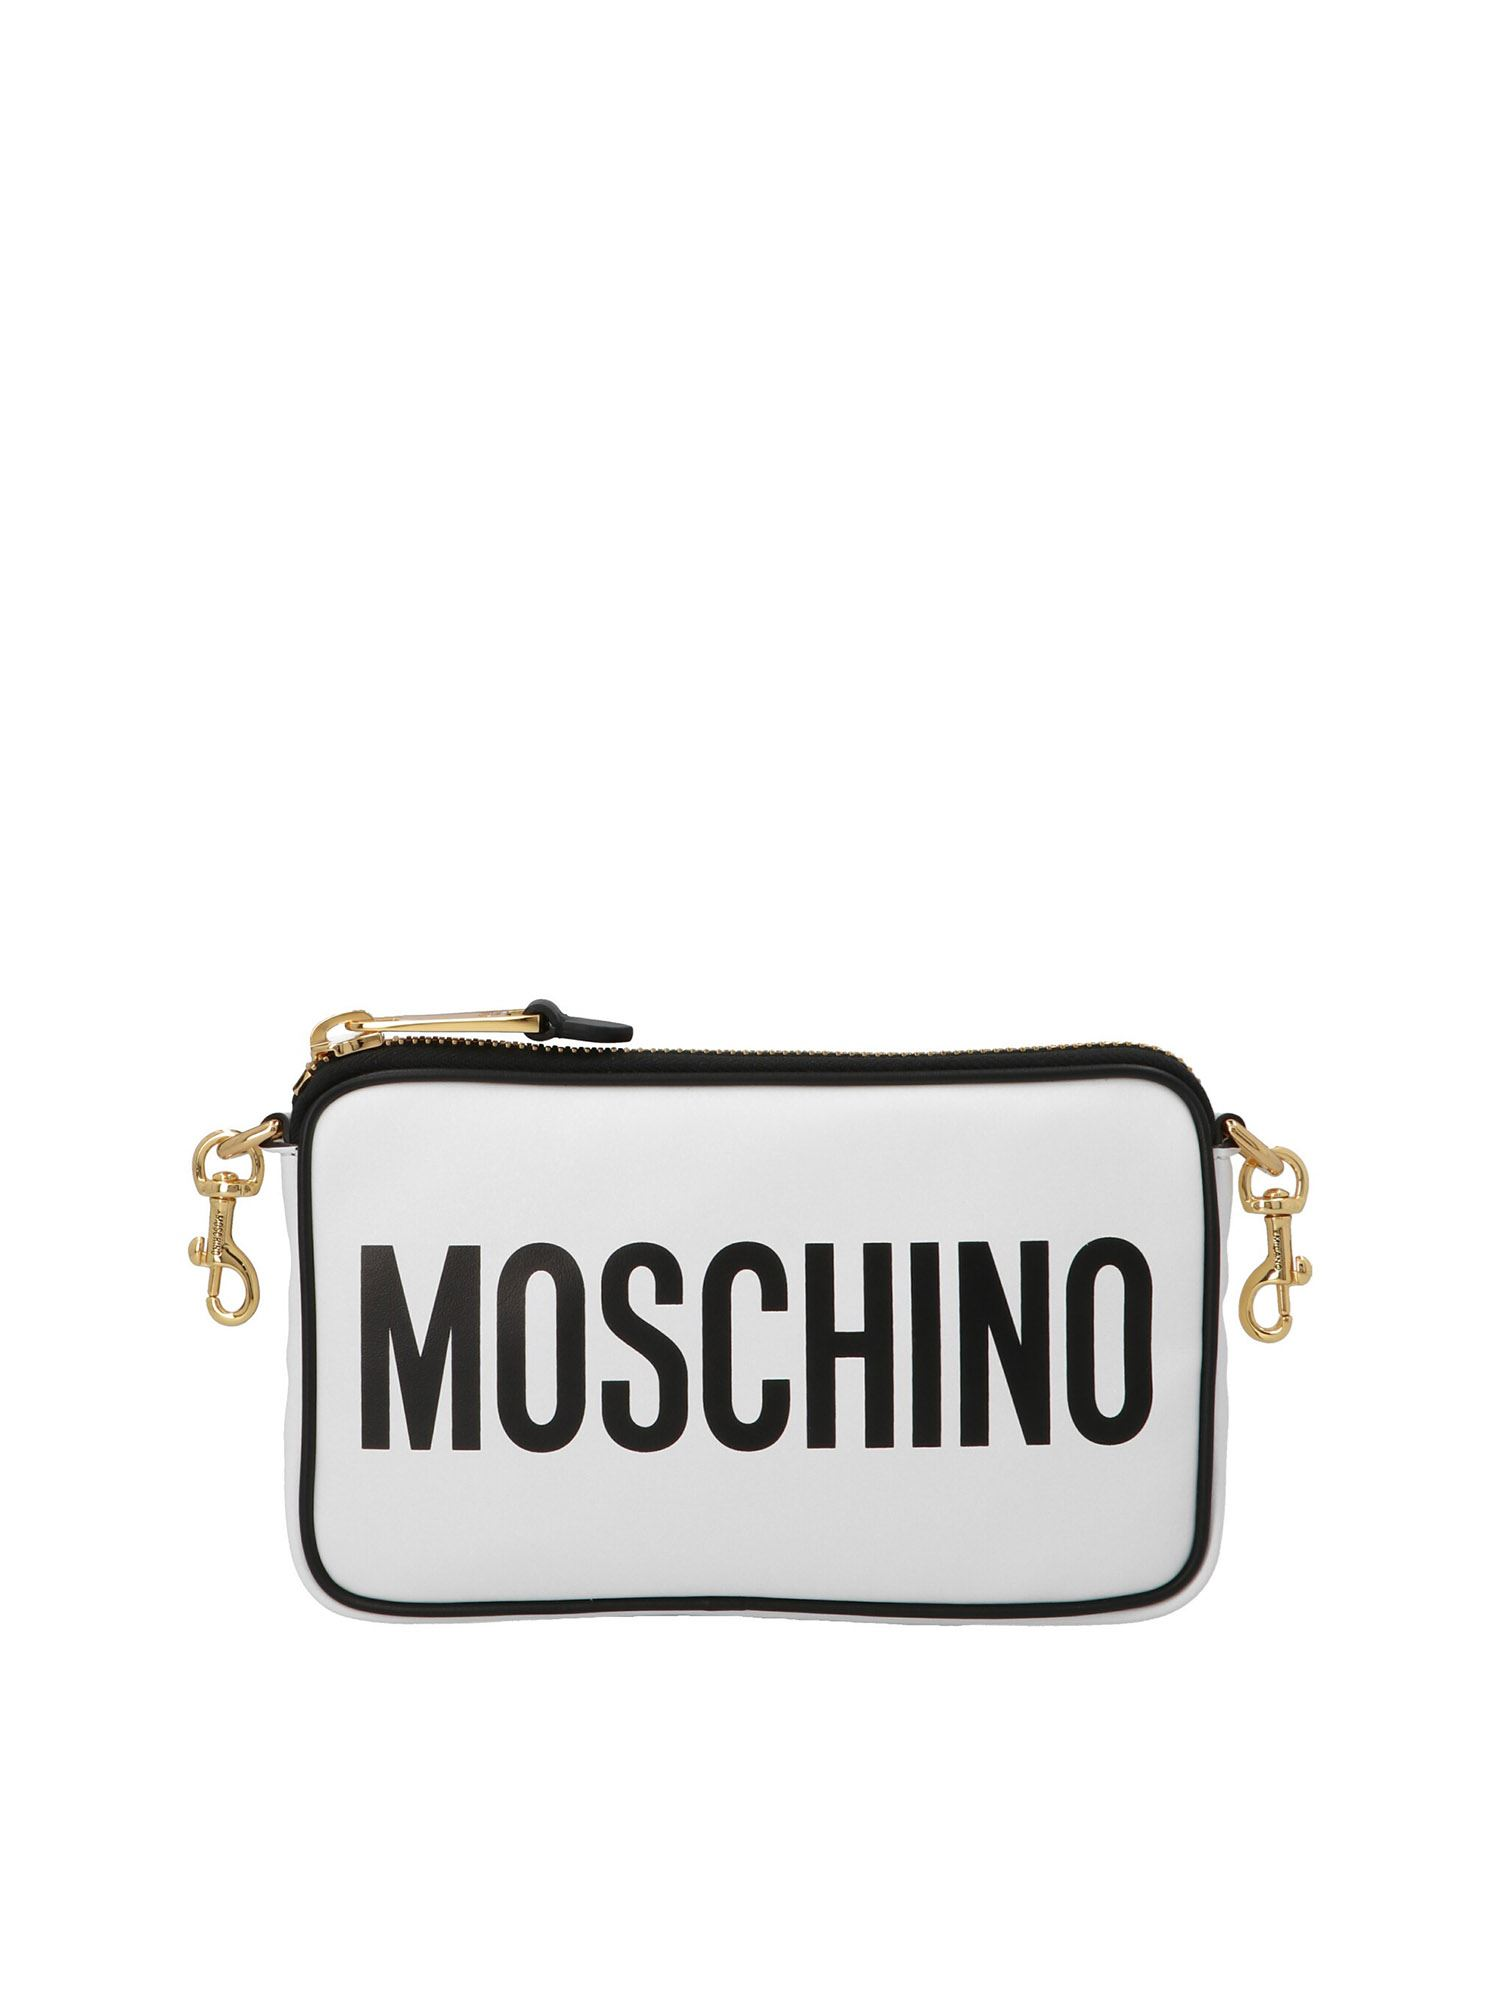 Moschino LOGO SHOULDER BAG IN WHITE